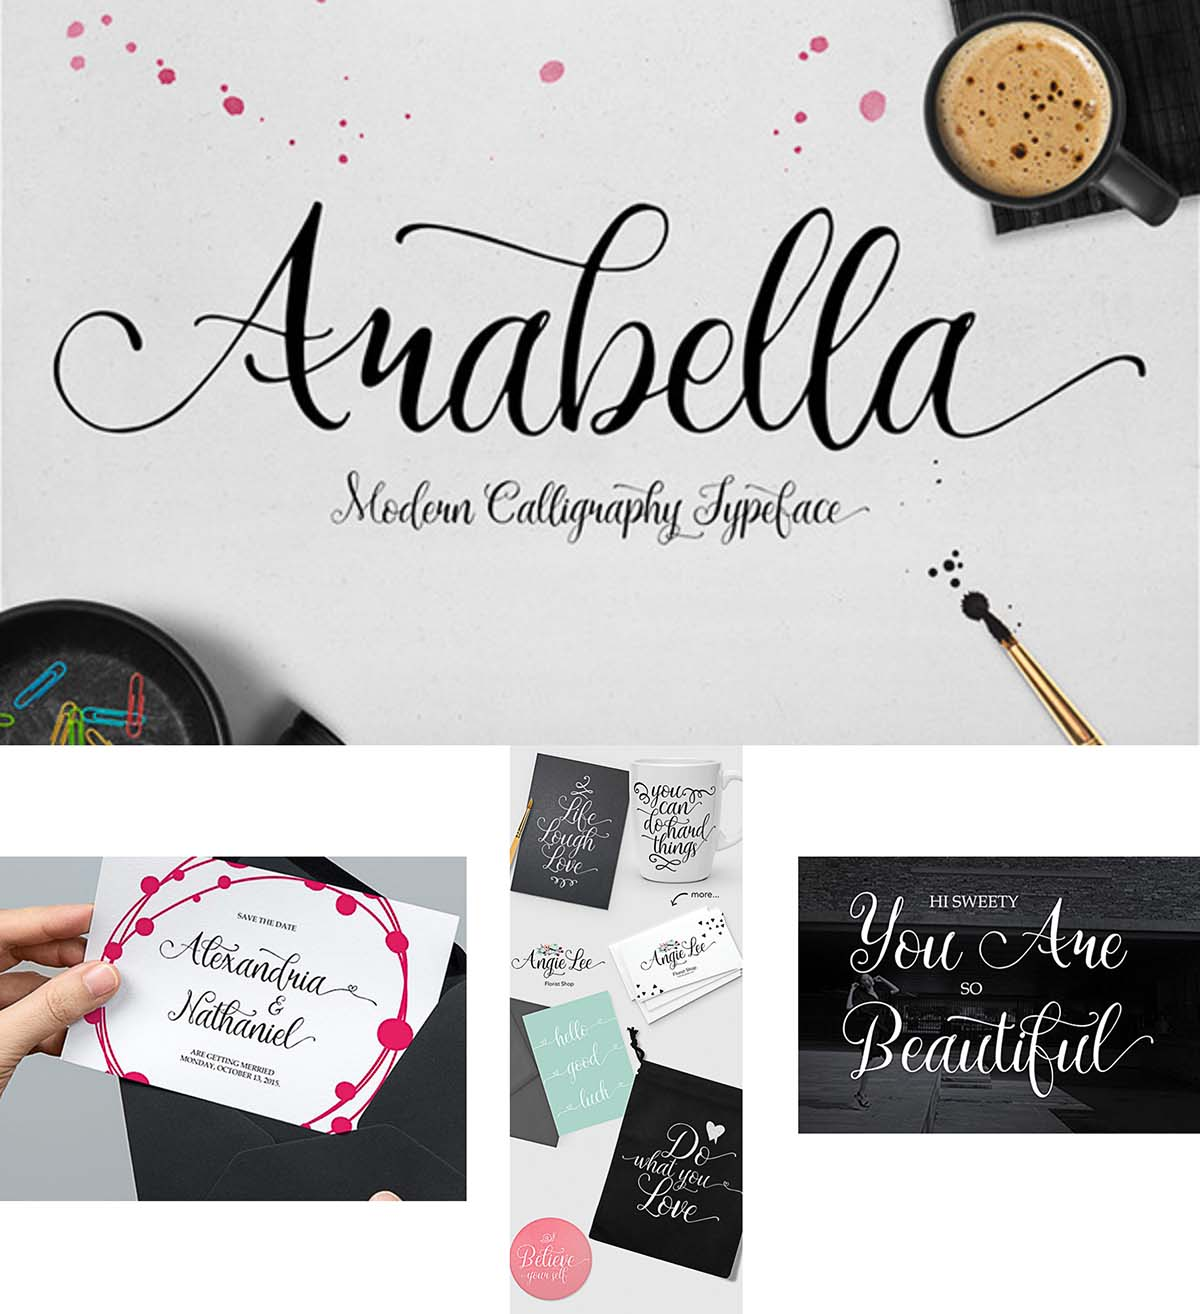 Copperplate Calligraphy Font Free Arabella Creative Font Free Download